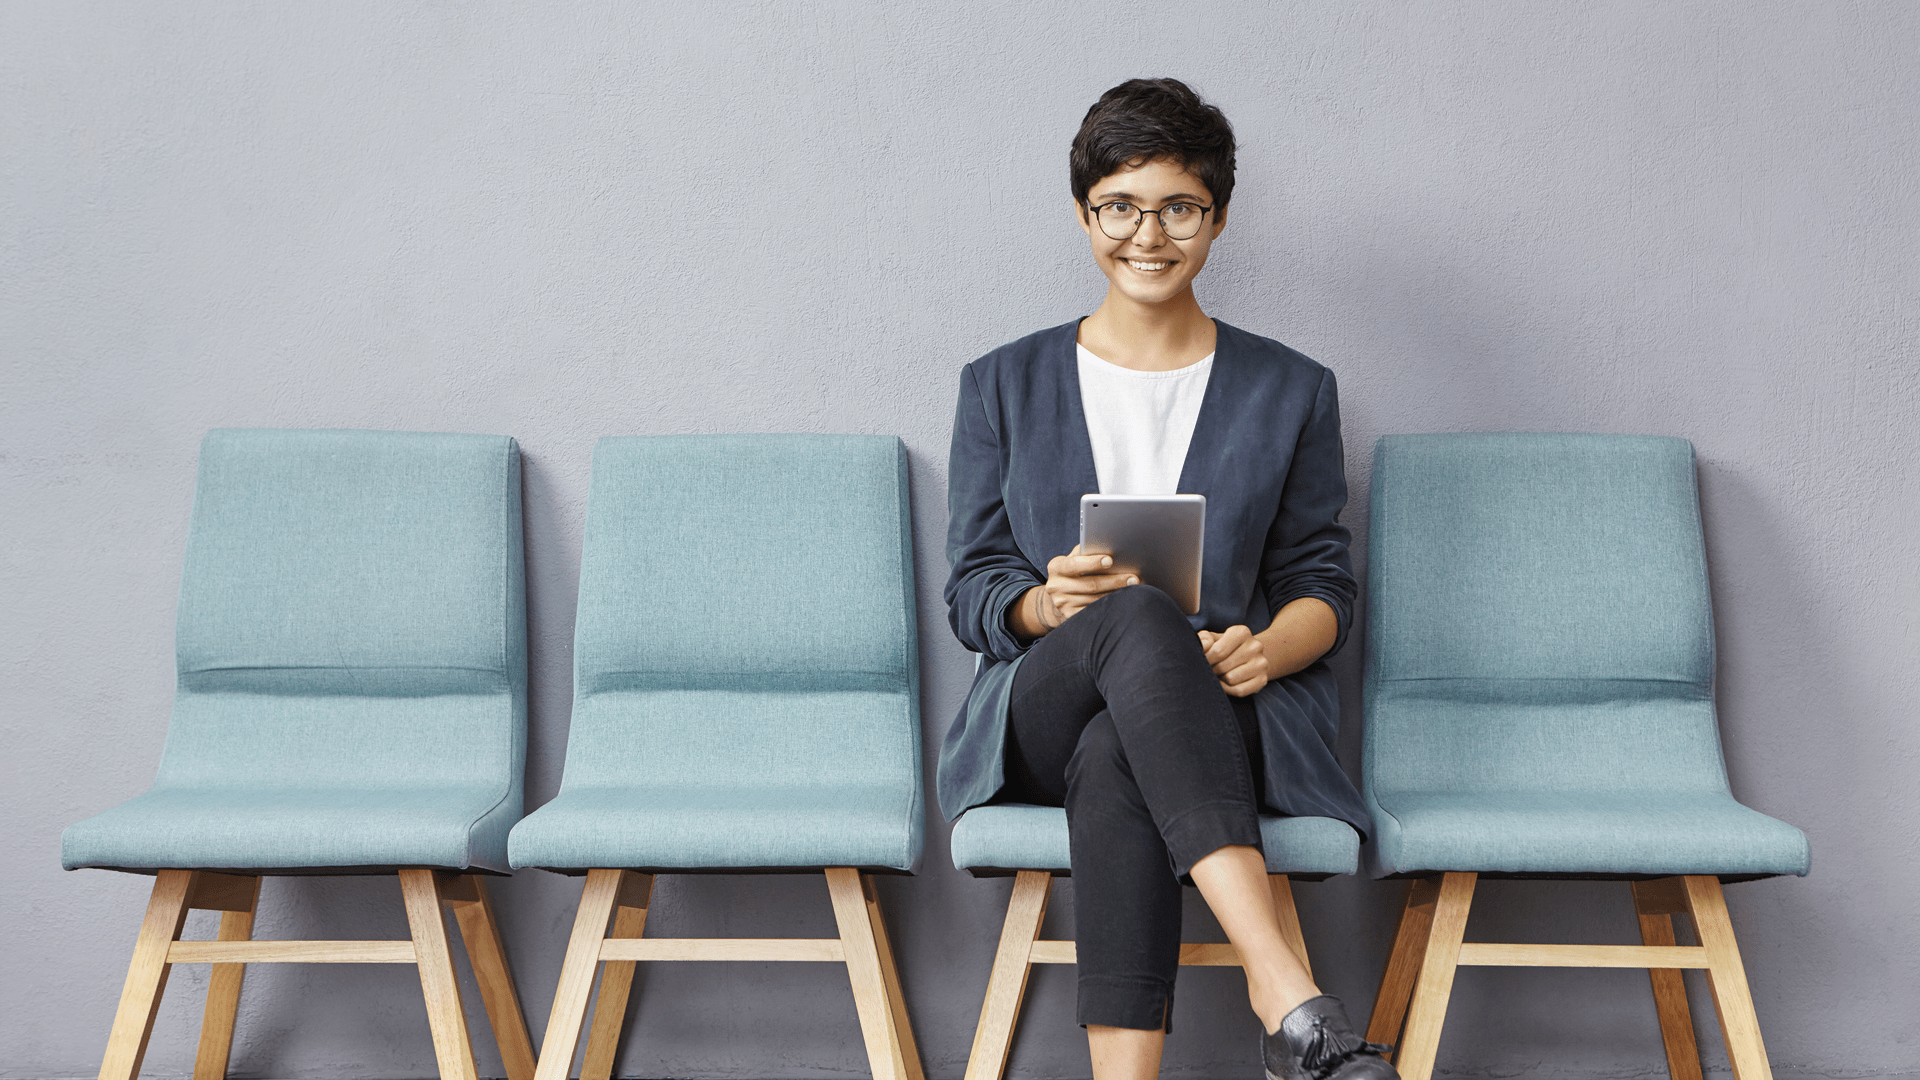 Woman sits with her tablet in a waiting room. She is smiling at the camera.